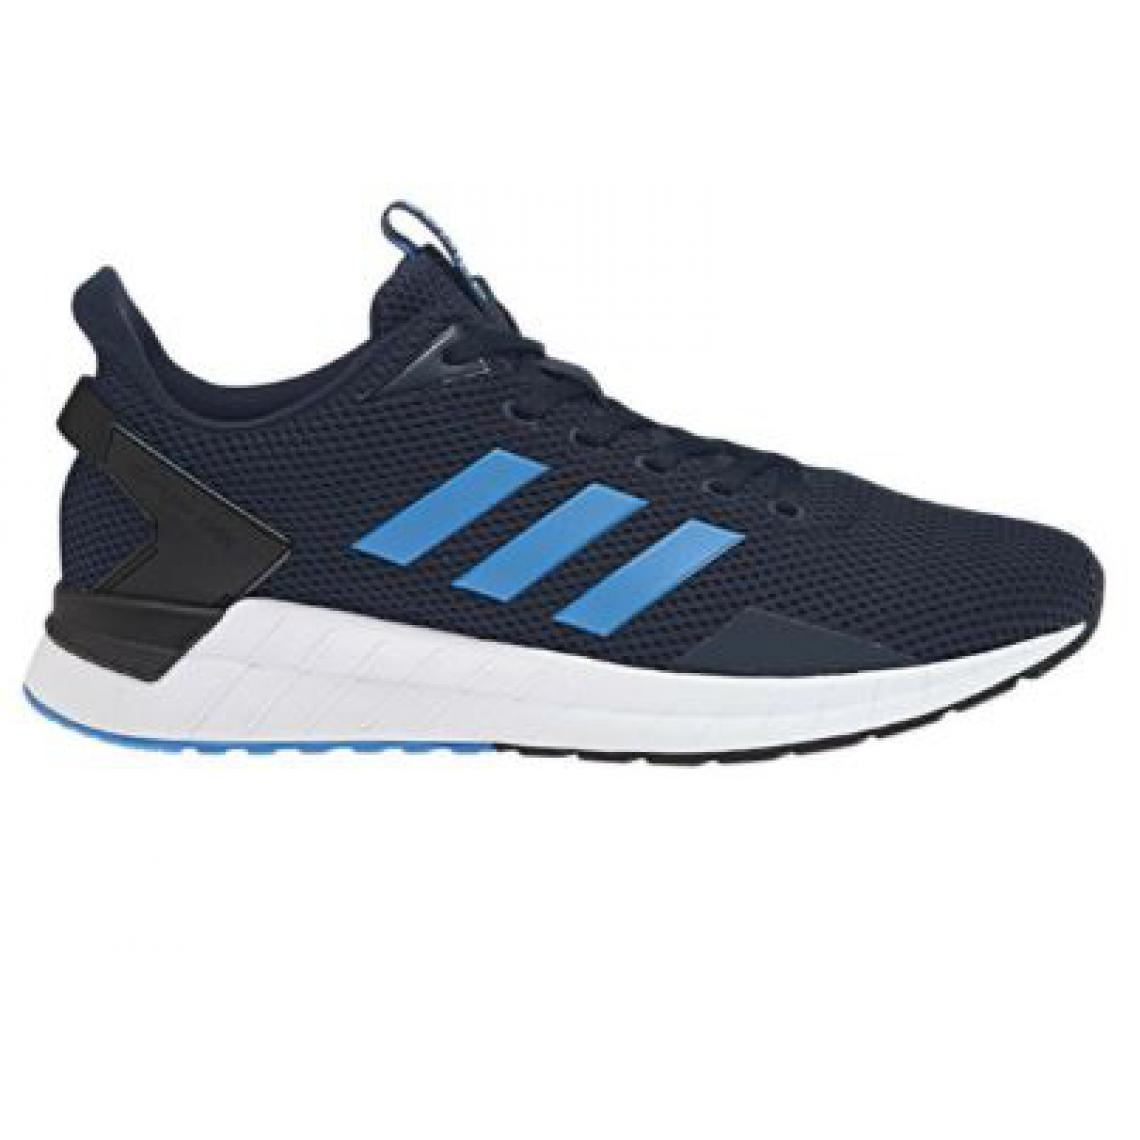 new lower prices lower price with ever popular Chaussures de running homme Questar Ride adidas